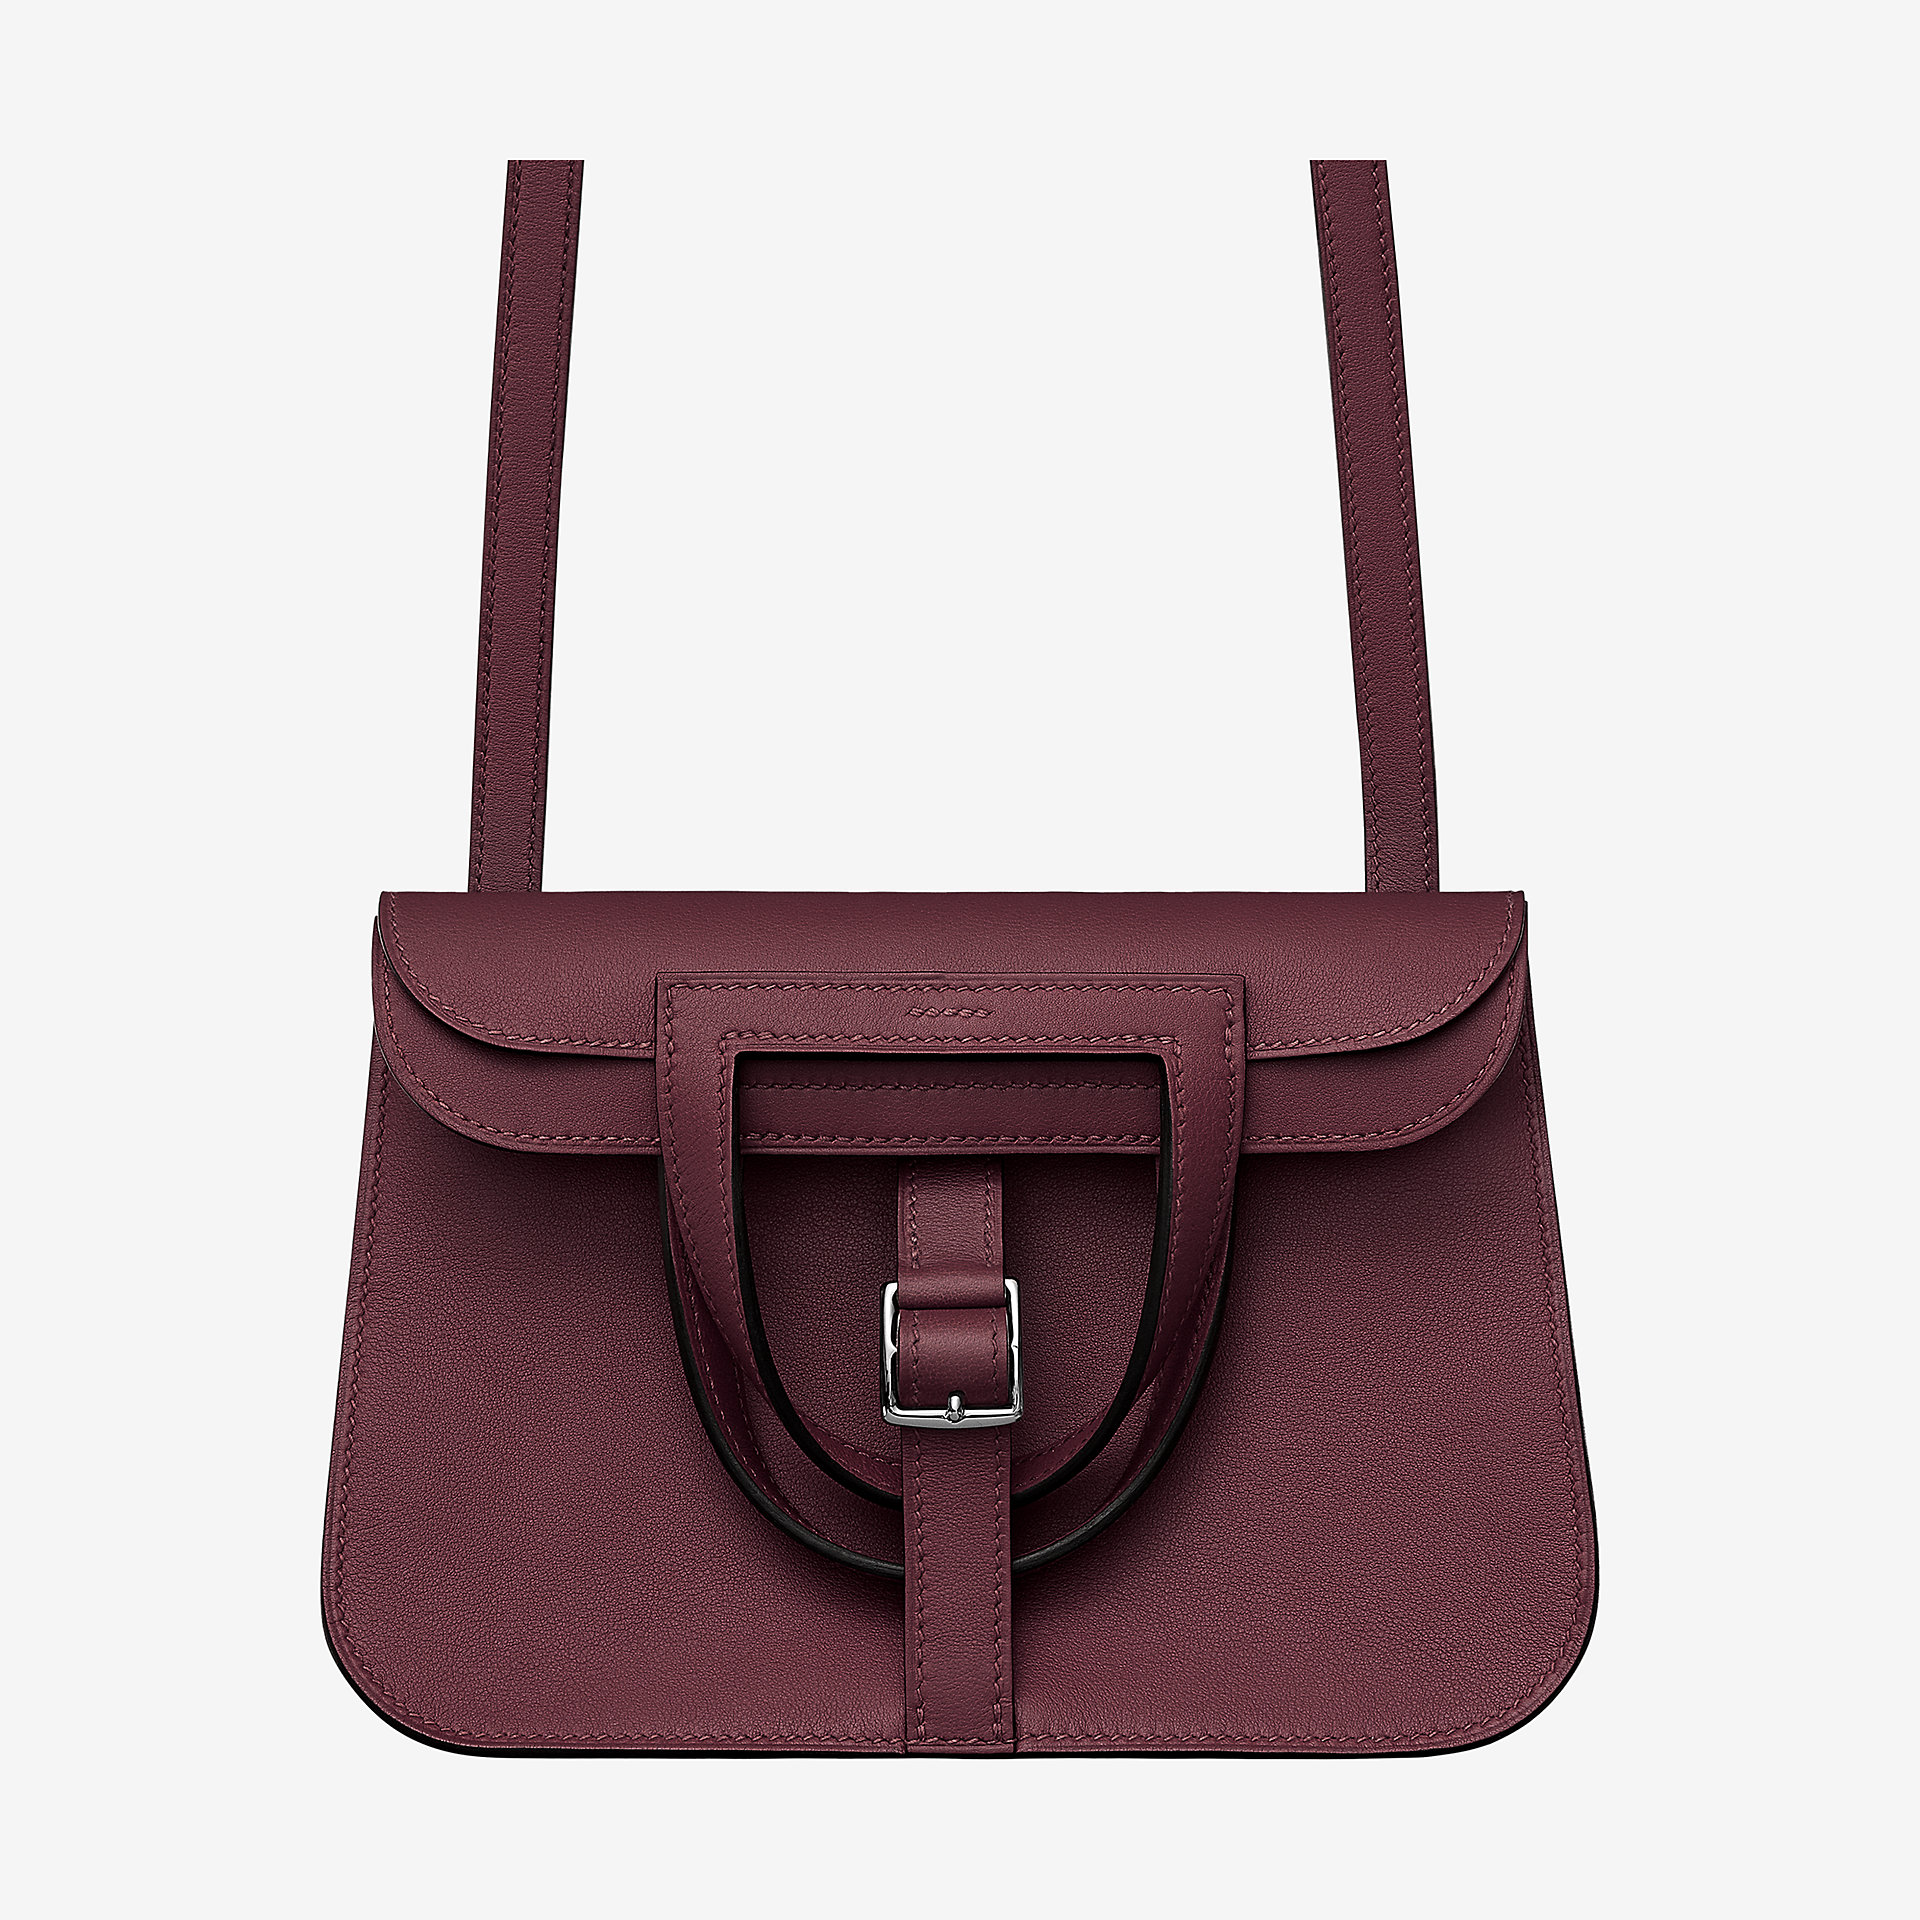 爱马仕Hermes Halzan mini bag 波尔多酒红Swift calfskin 小牛皮手提包